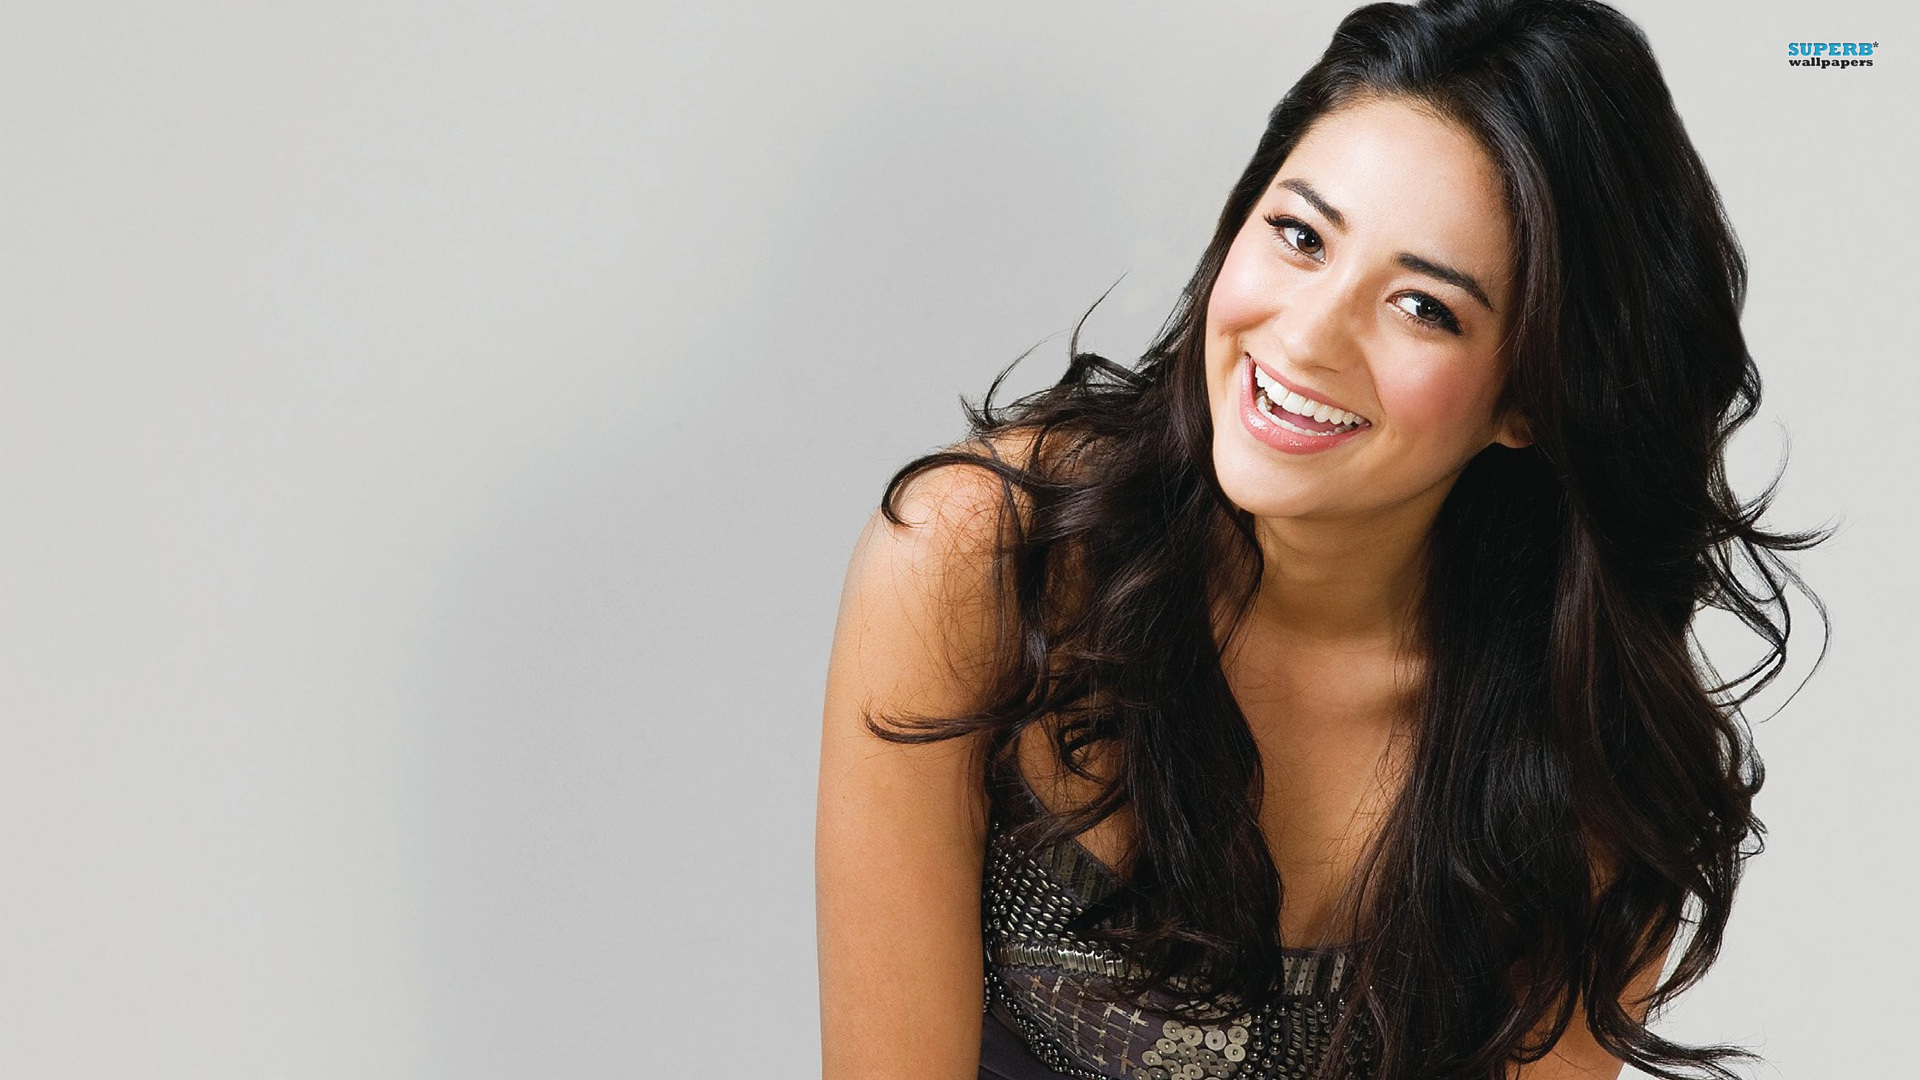 1920x1080 - Shay Mitchell Wallpapers 9